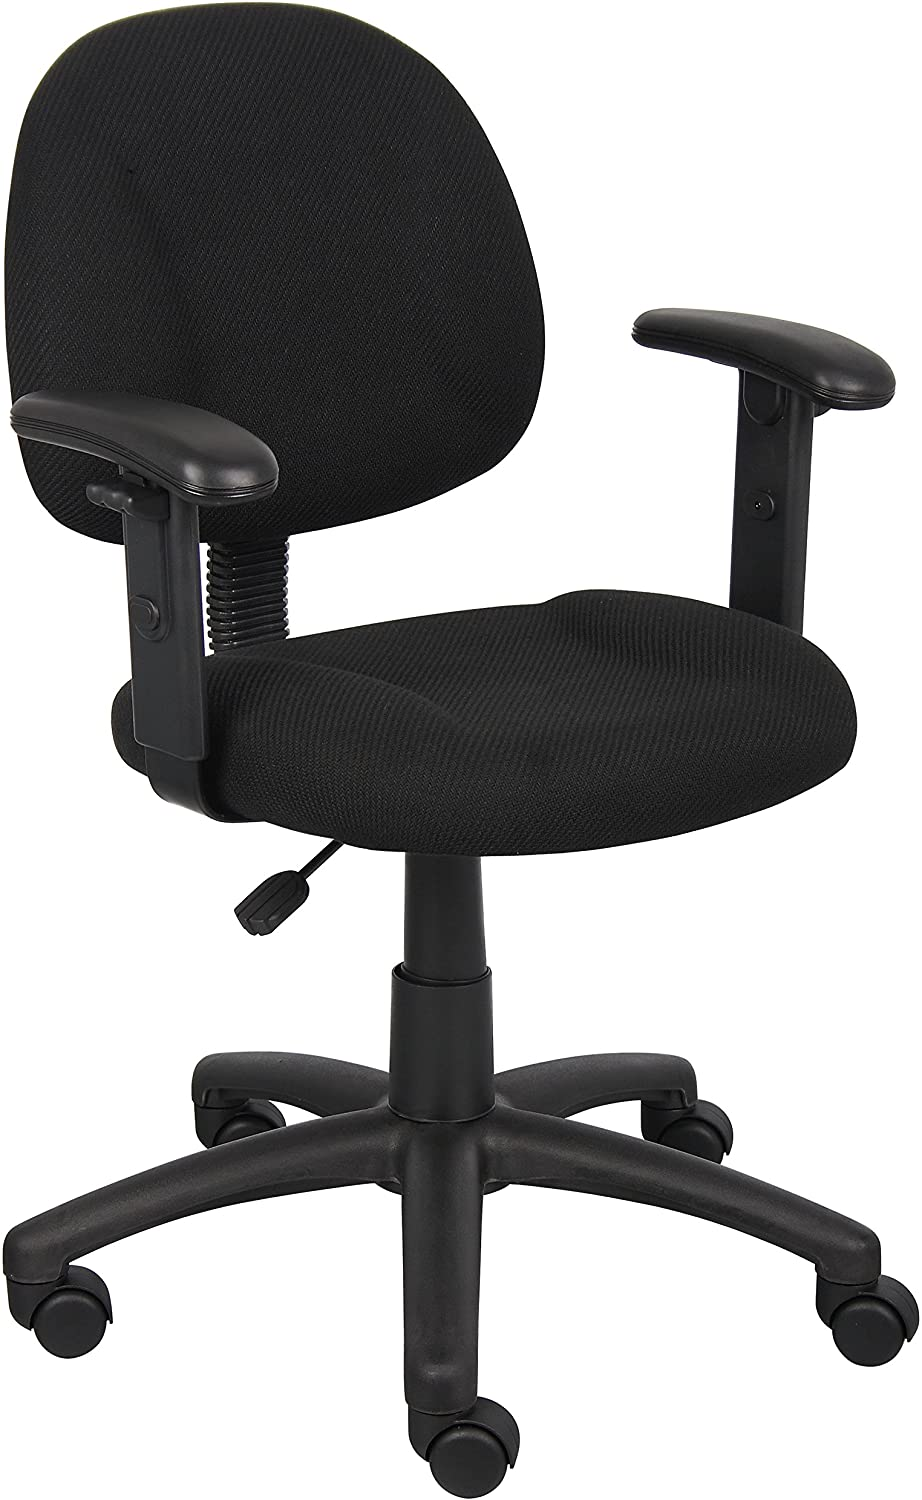 81mFGGkO1oL. AC SL1500 - What Is The Best Office Chair For Short Person With Back Pain - ChairPicks